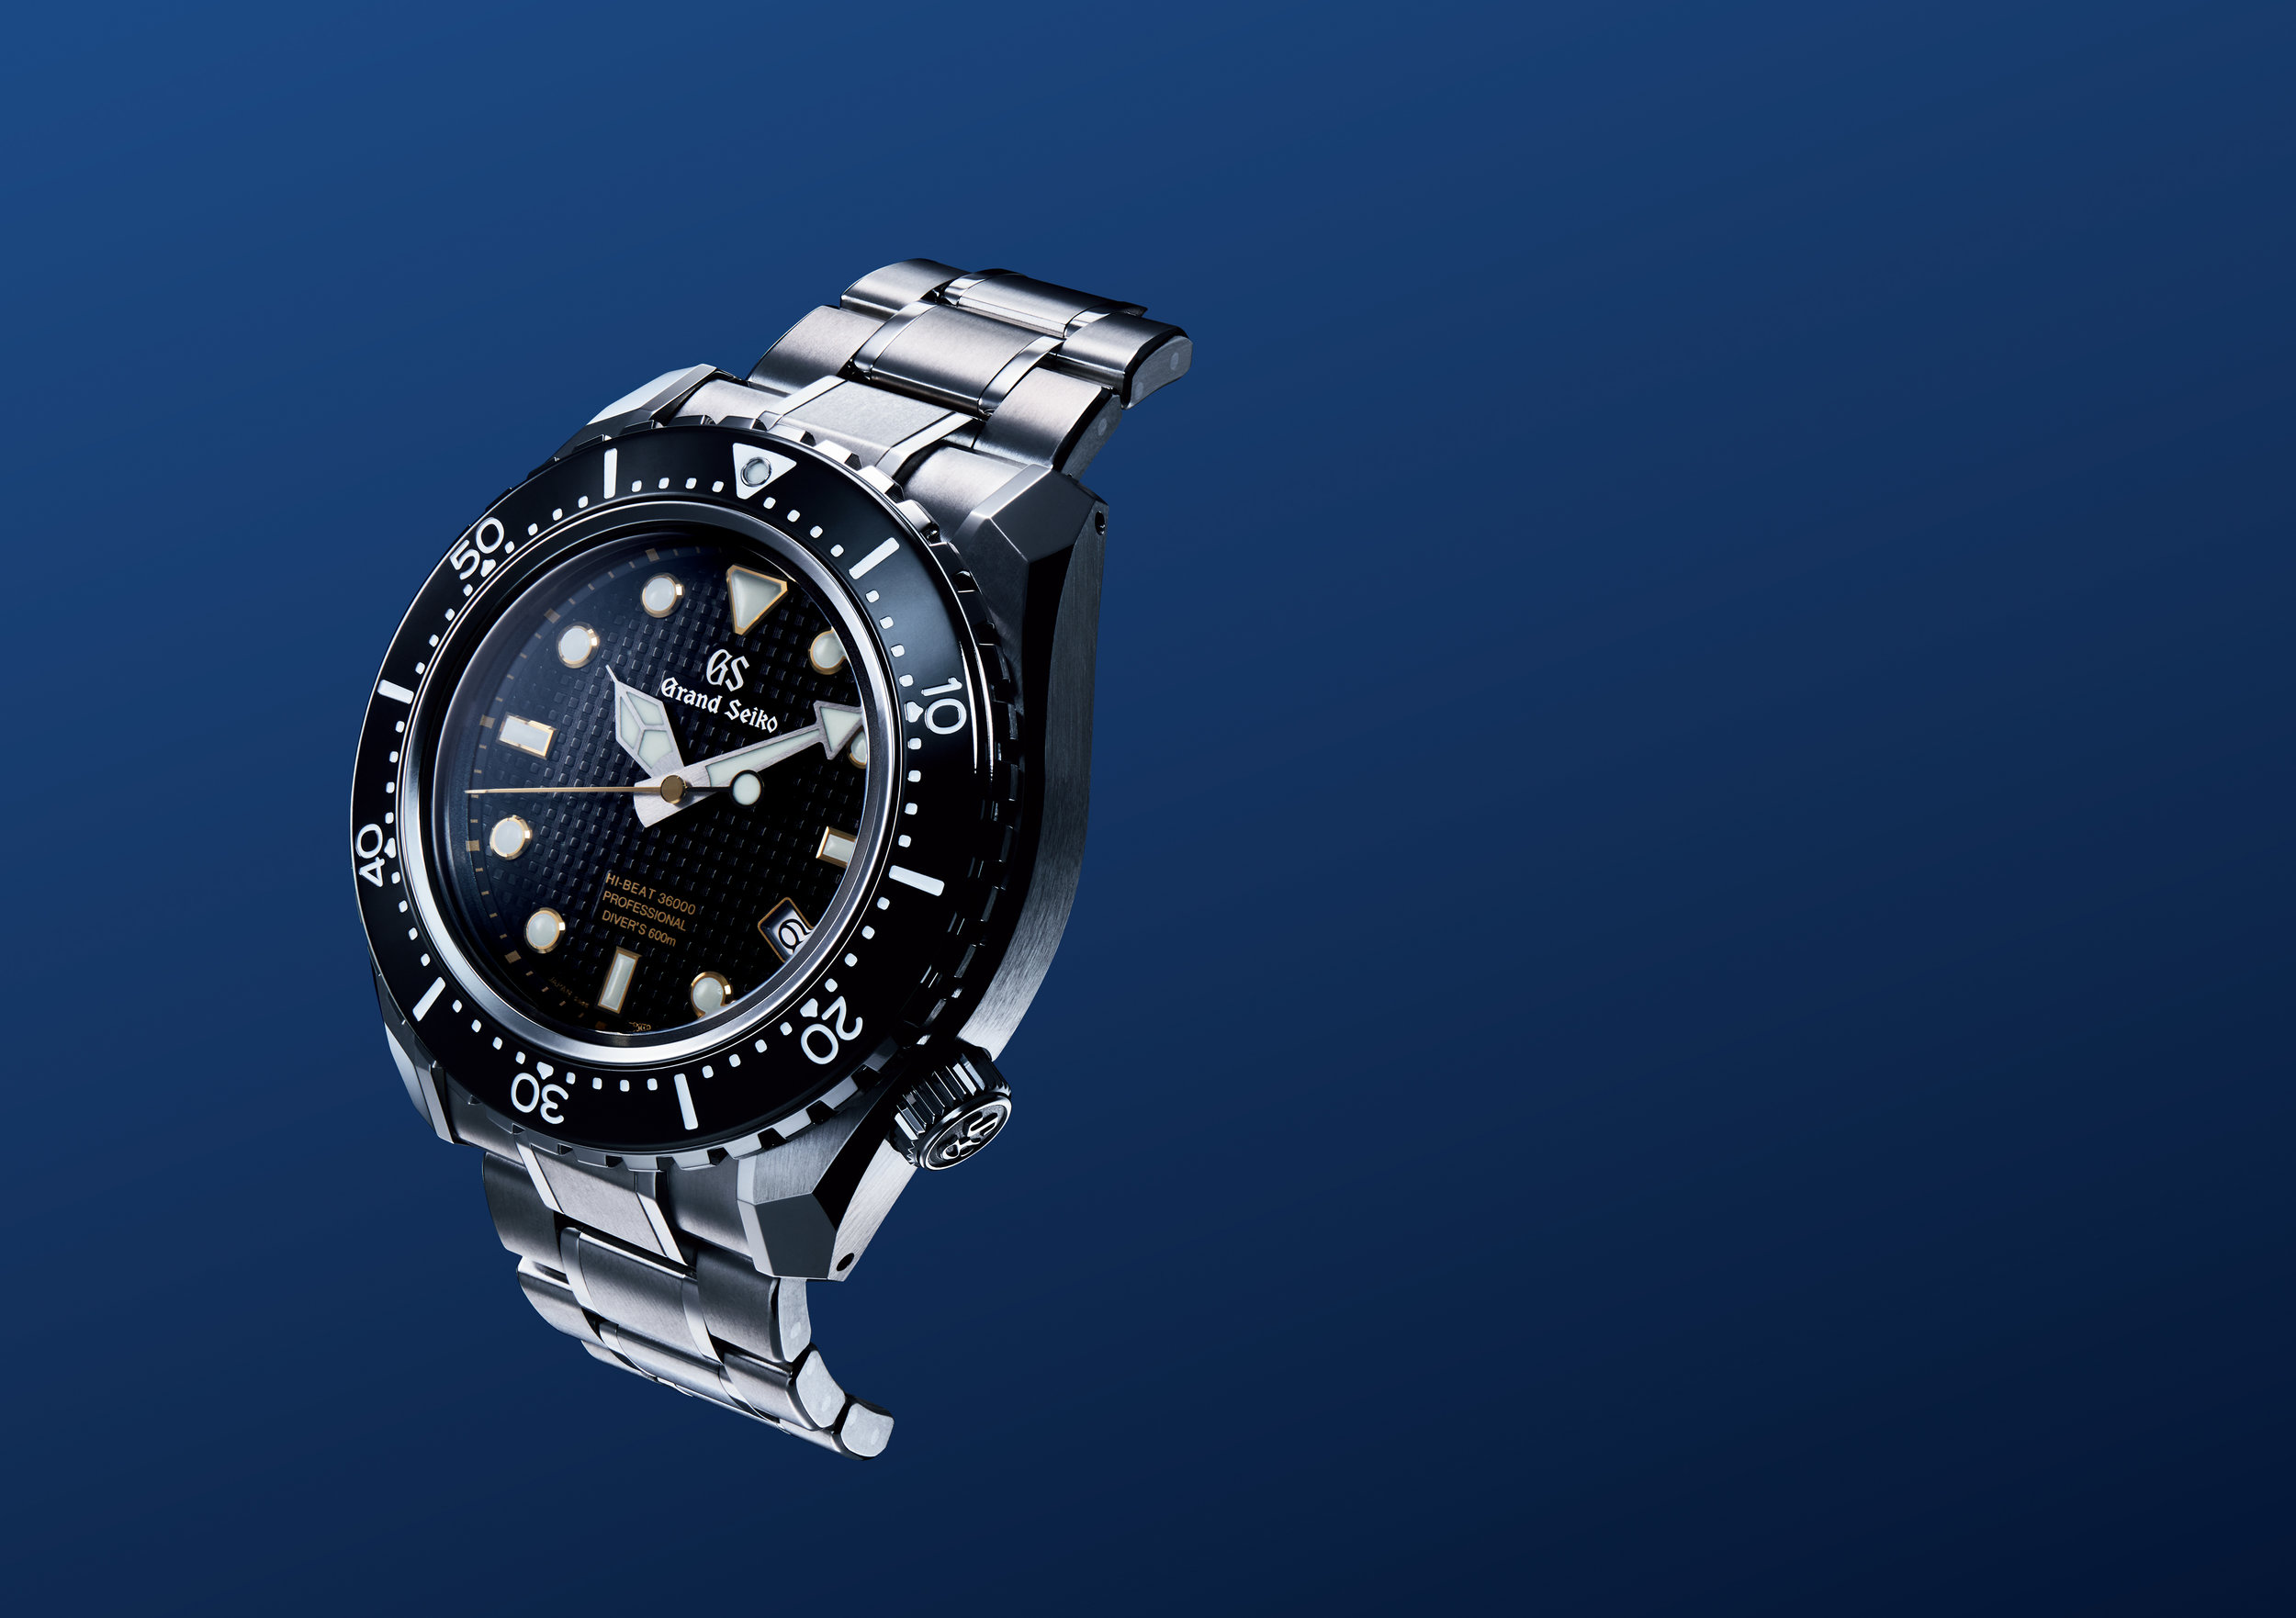 It is worth pointing out that there are several Grand Seiko sports watches including several divers watches and chronographs. These are worthy additions to the Grand Seiko name however my focus for this article is the dress watches. Maybe a future article will take a look at these modern sports Grand Seikos, but not today.